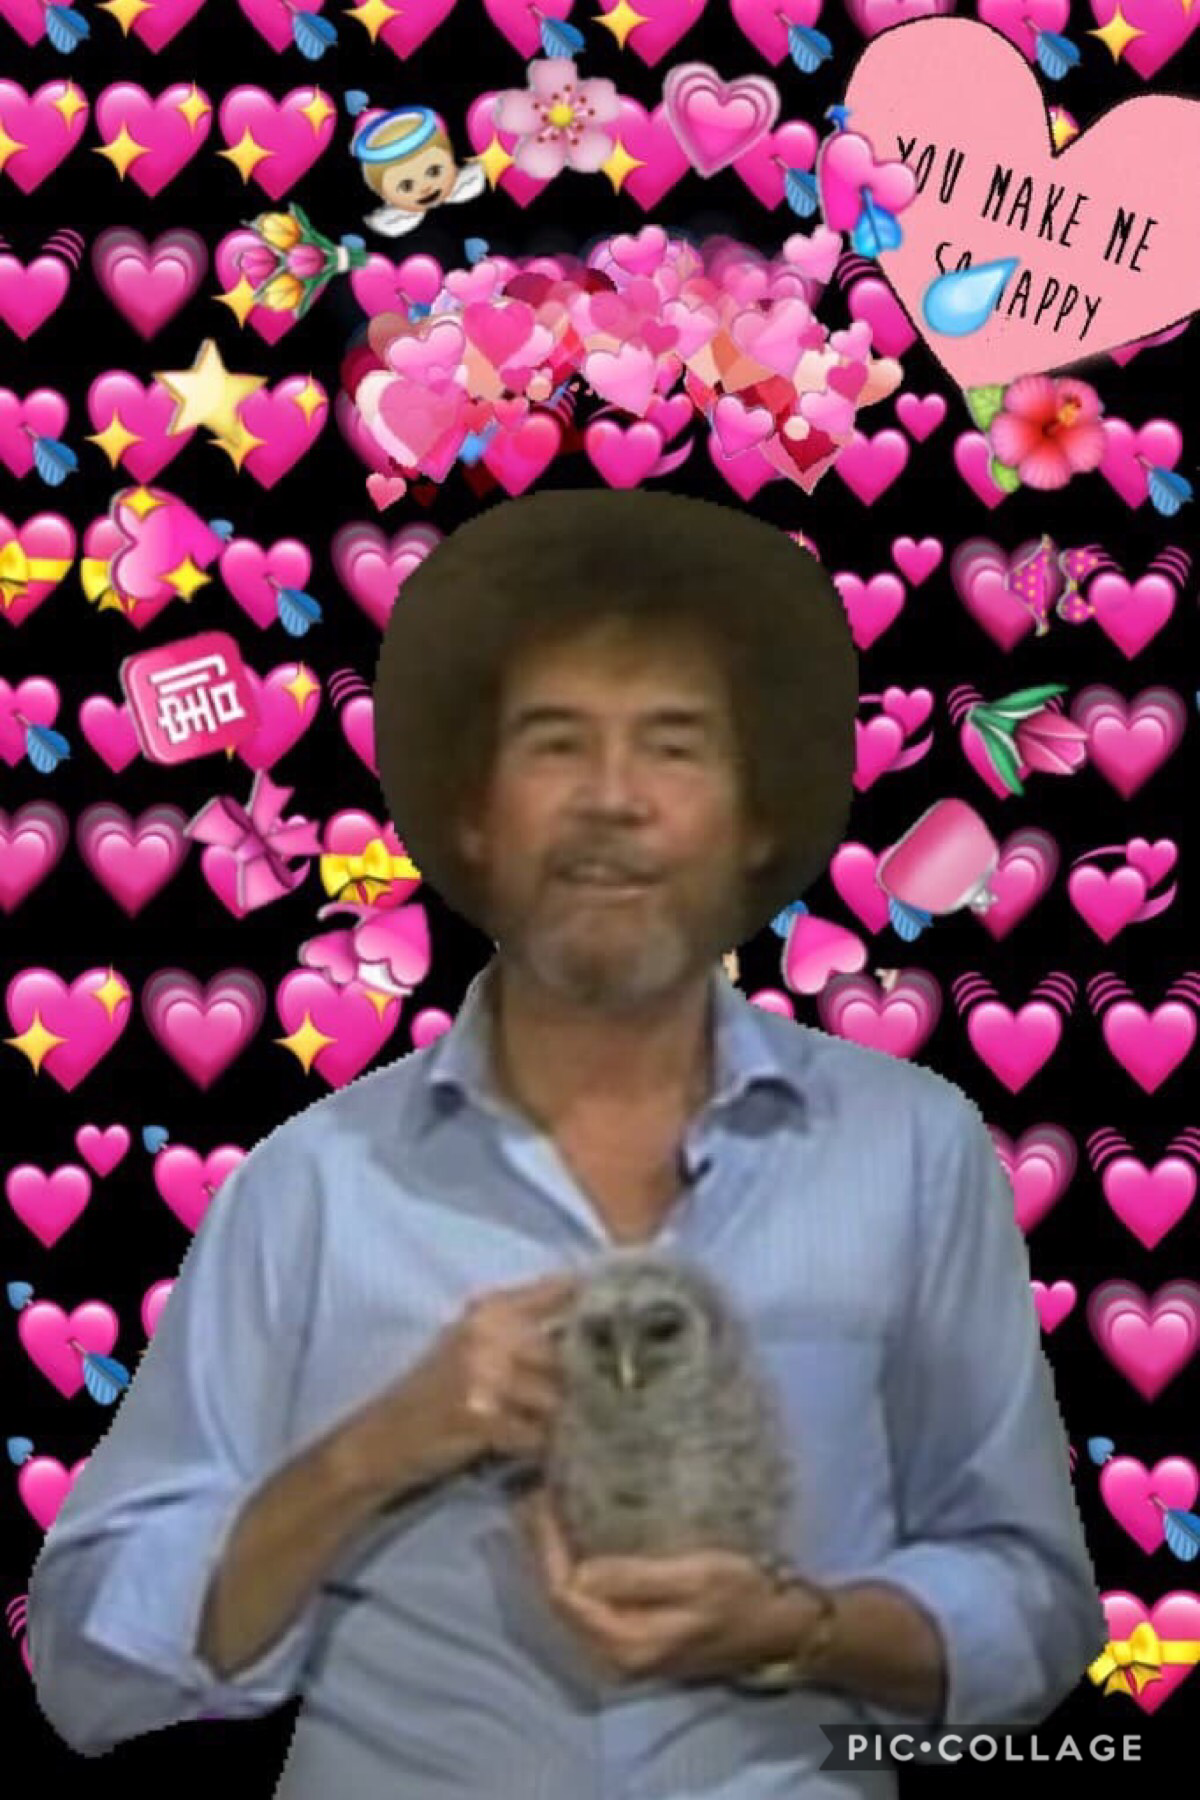 Made by R_Iver🌲 8/13/2018 Remix Bob Ross collages and I'll post them with credit